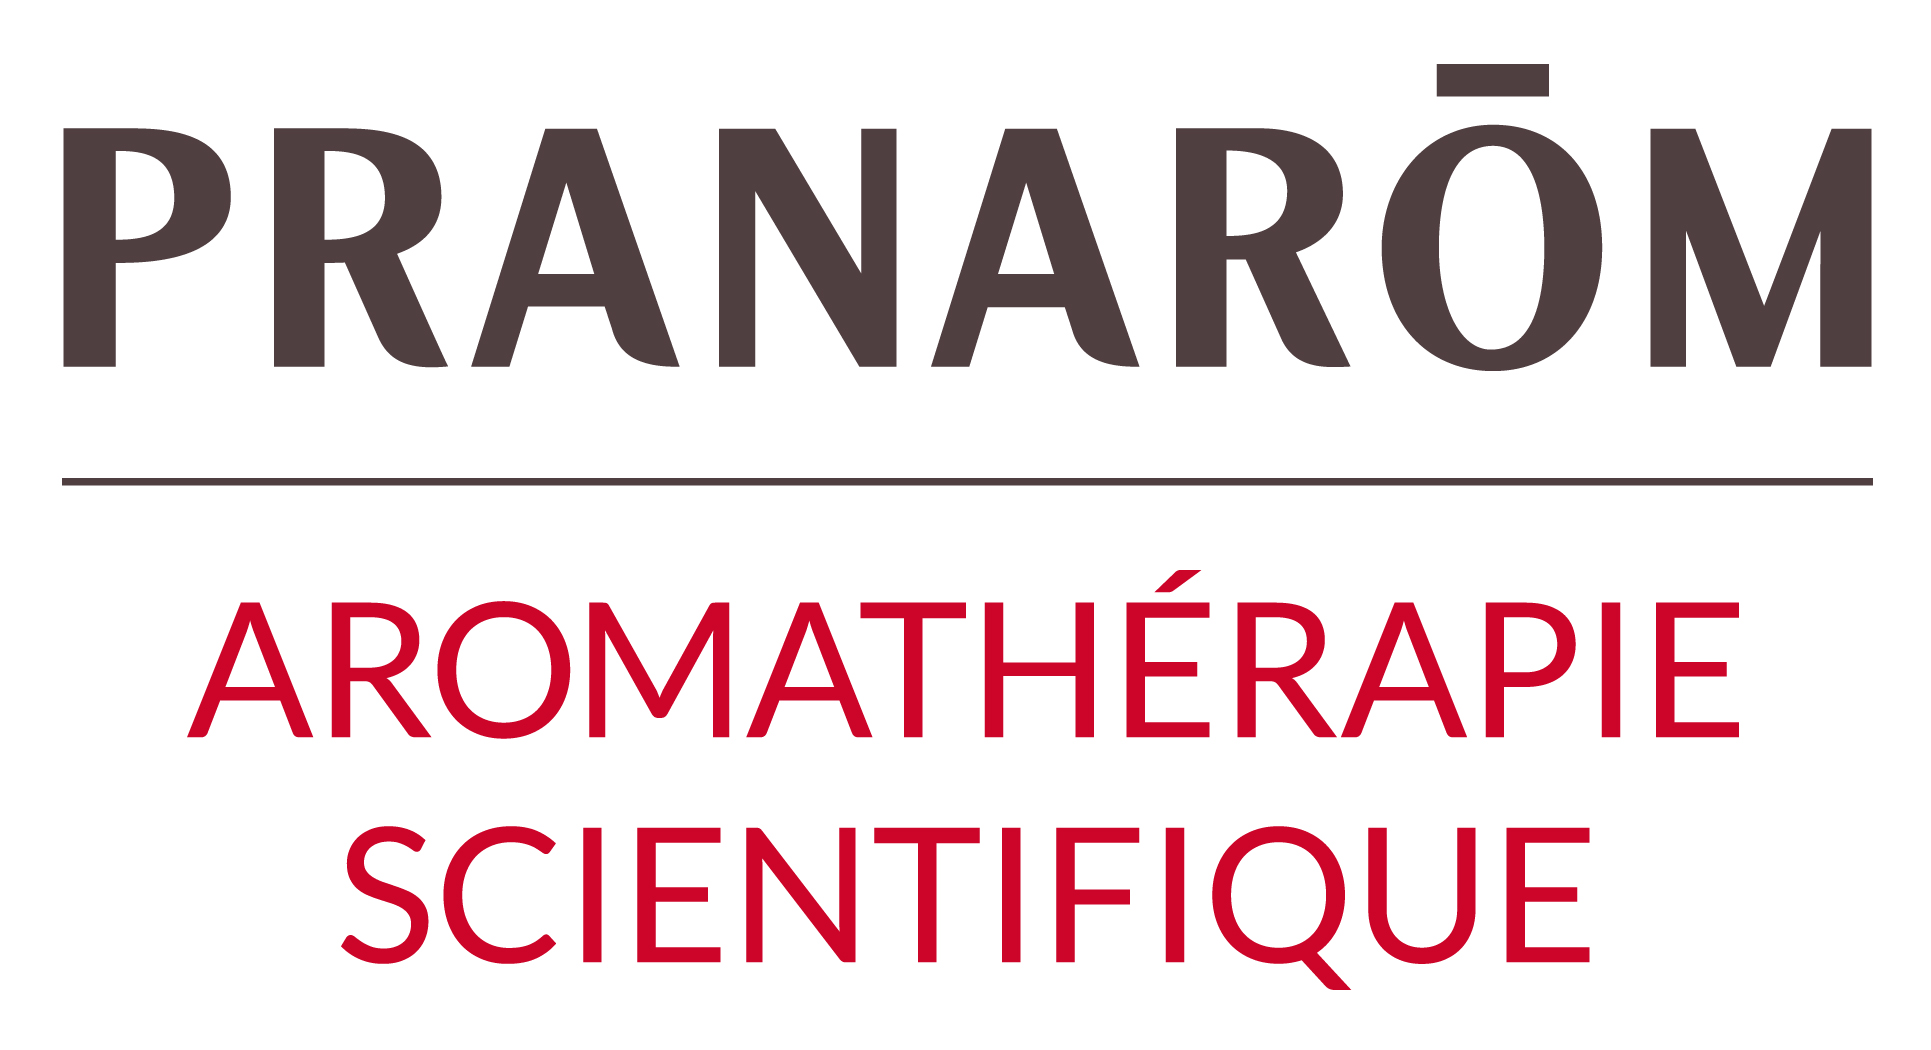 Pranarom_logo438_aromatherapie_scientifique